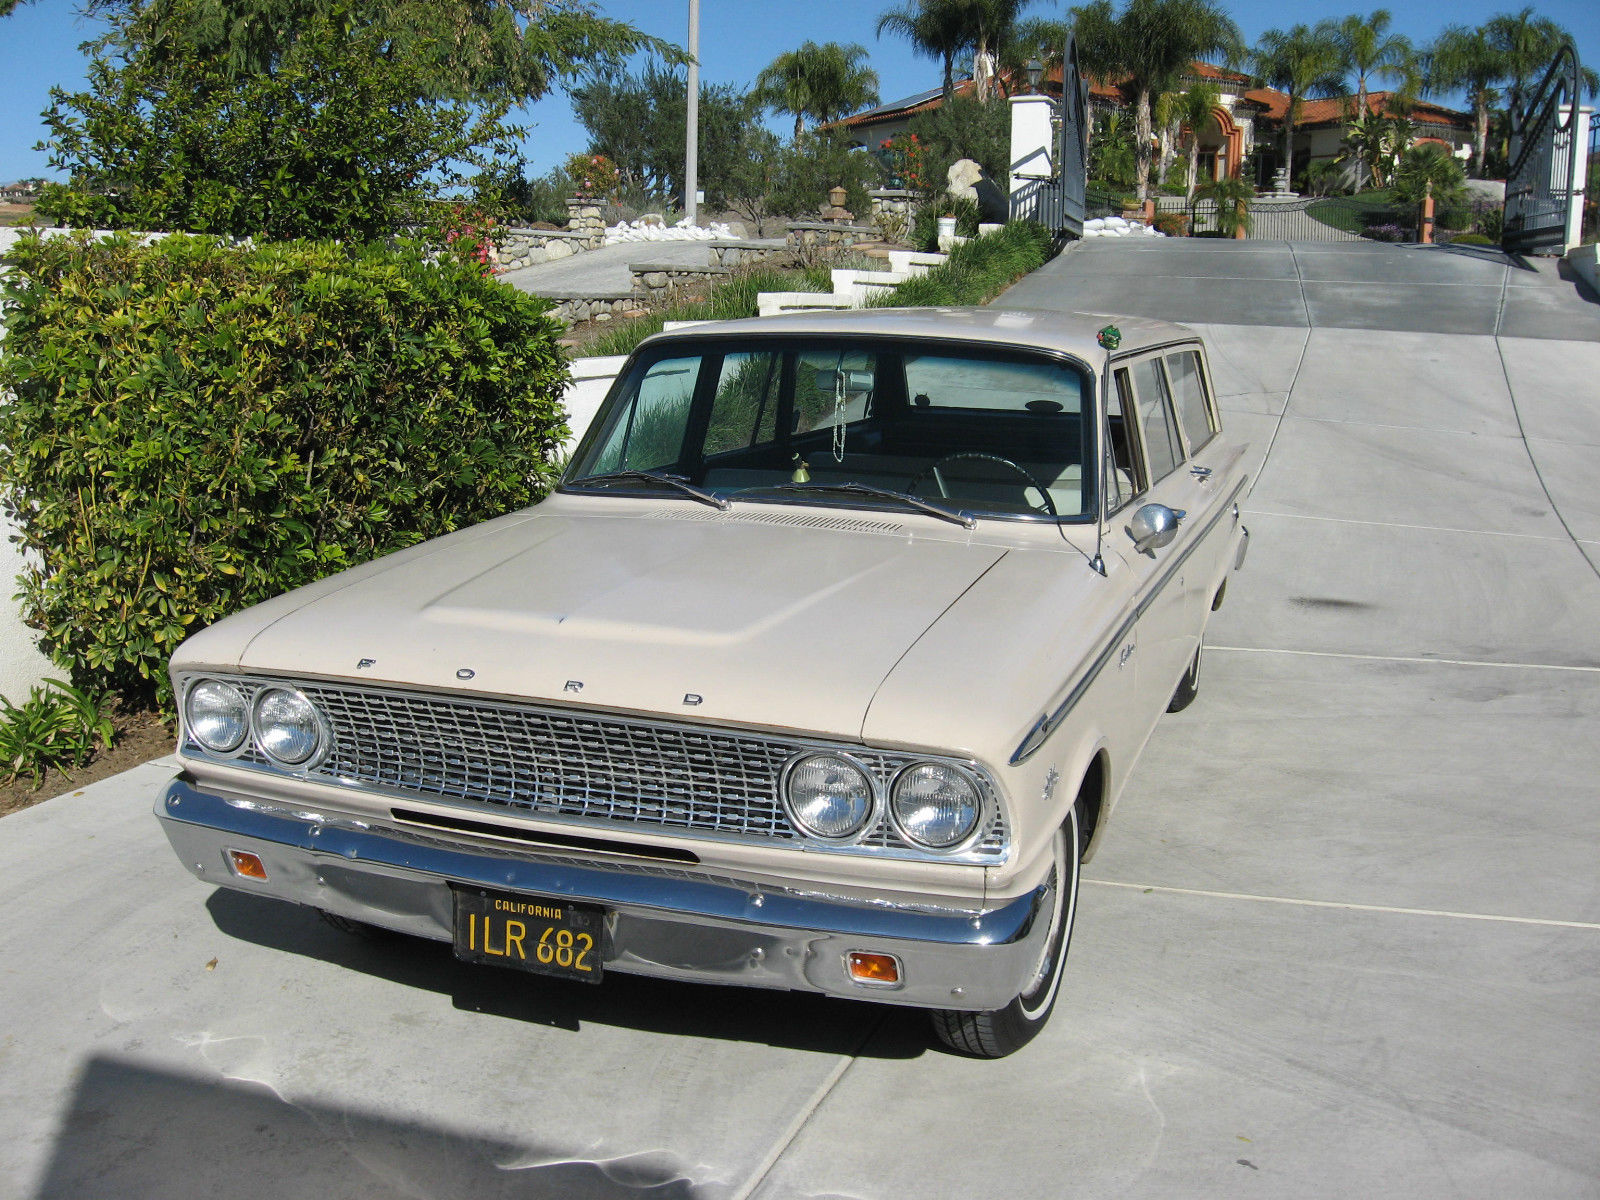 1963 ford fairlane ranch wagon stationwagon surfwagon california original for sale in riverside. Black Bedroom Furniture Sets. Home Design Ideas